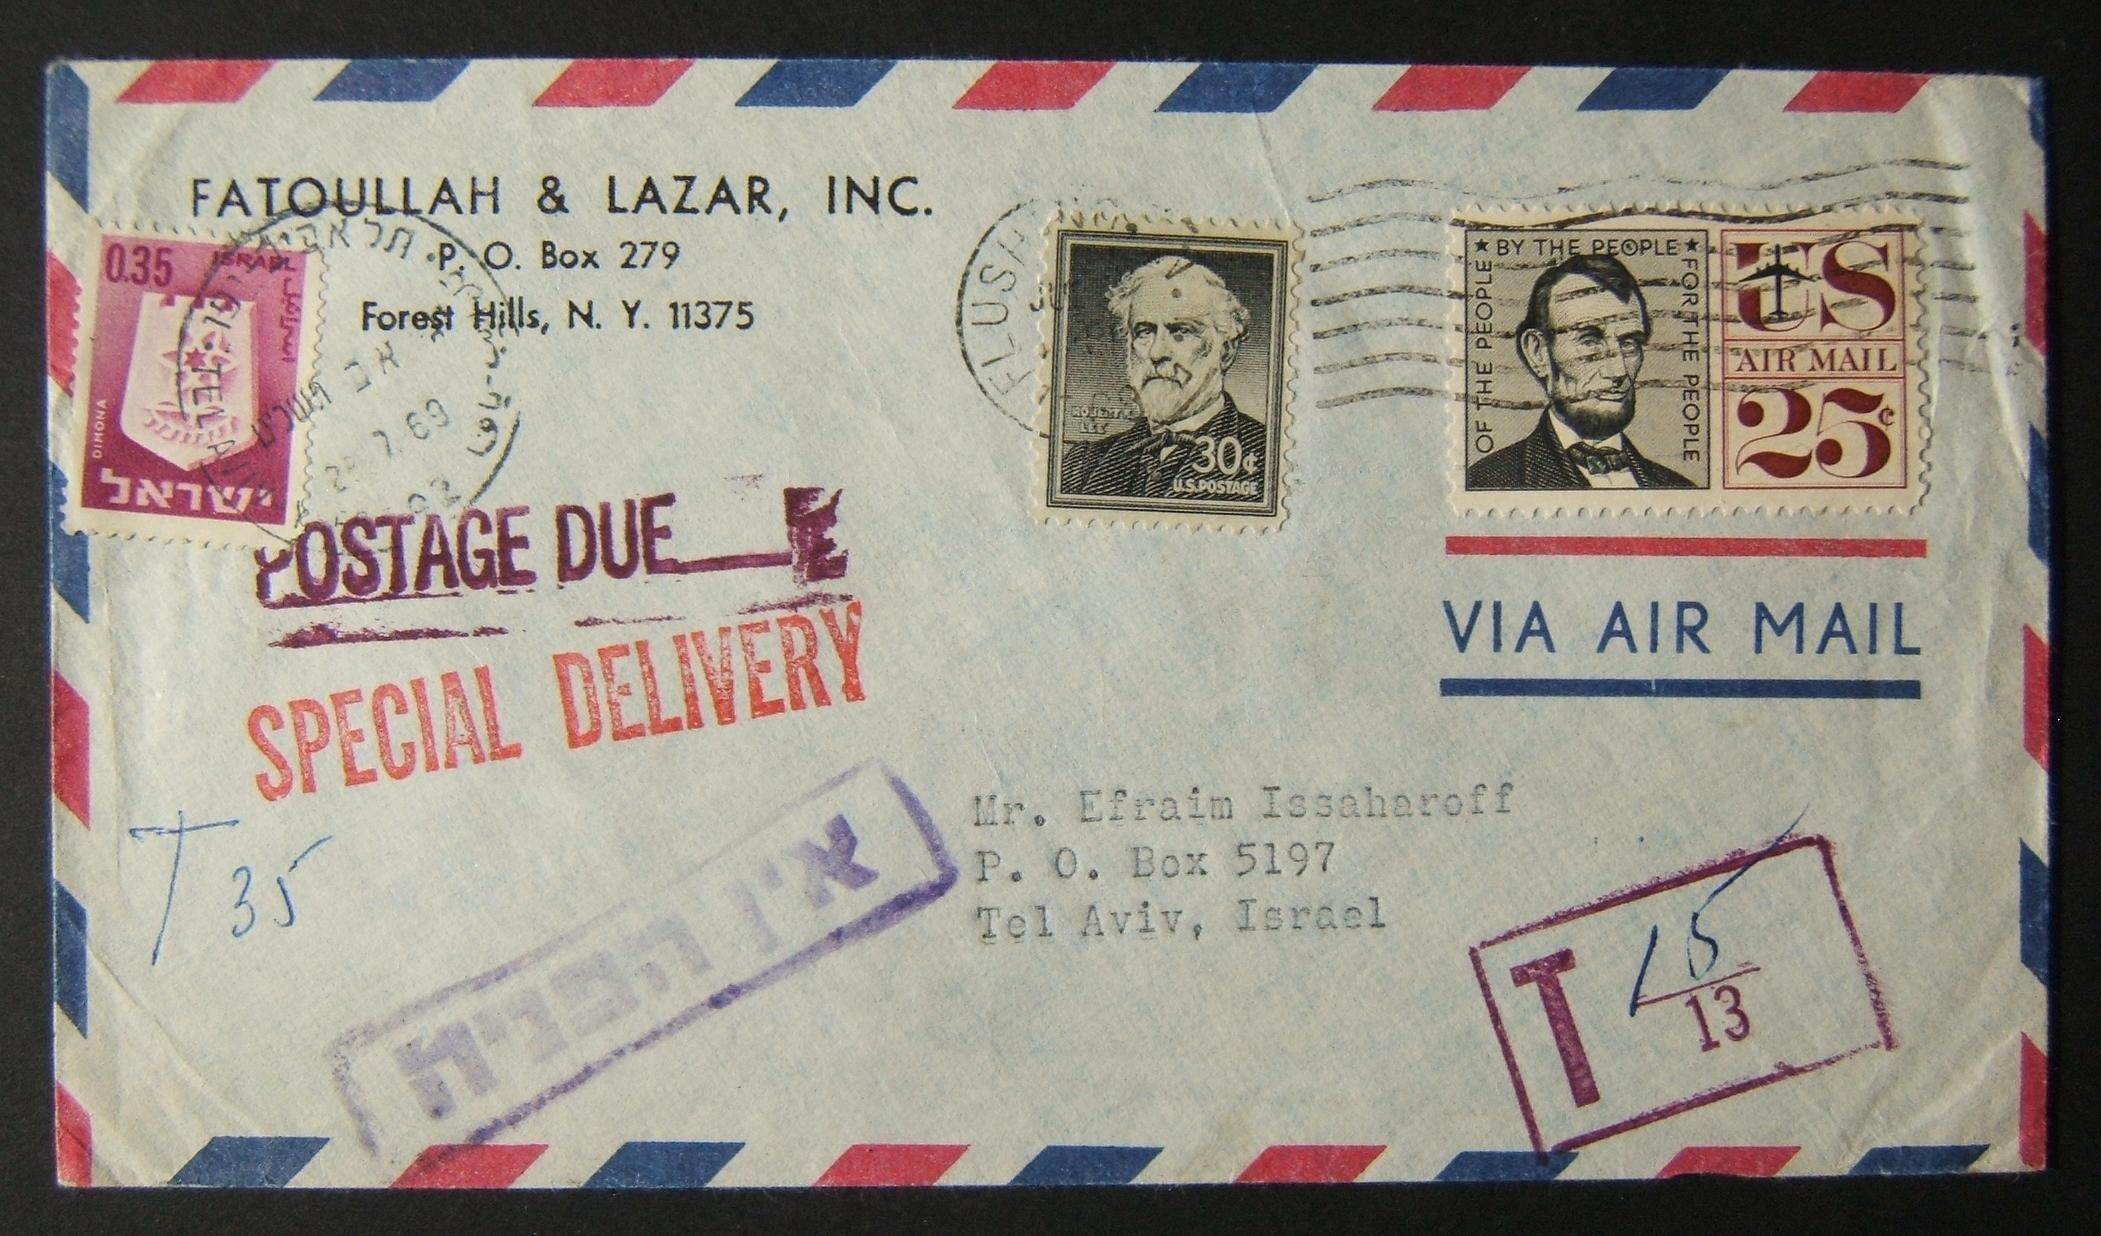 1969 incoming US taxed mail: JUL 1969 airmail special delivery commercial cover ex FLUSHING to TLV underfranked at $0.55 and taxed 0.35L in Israel, paid 28-7-69 using 1965/67 1st T